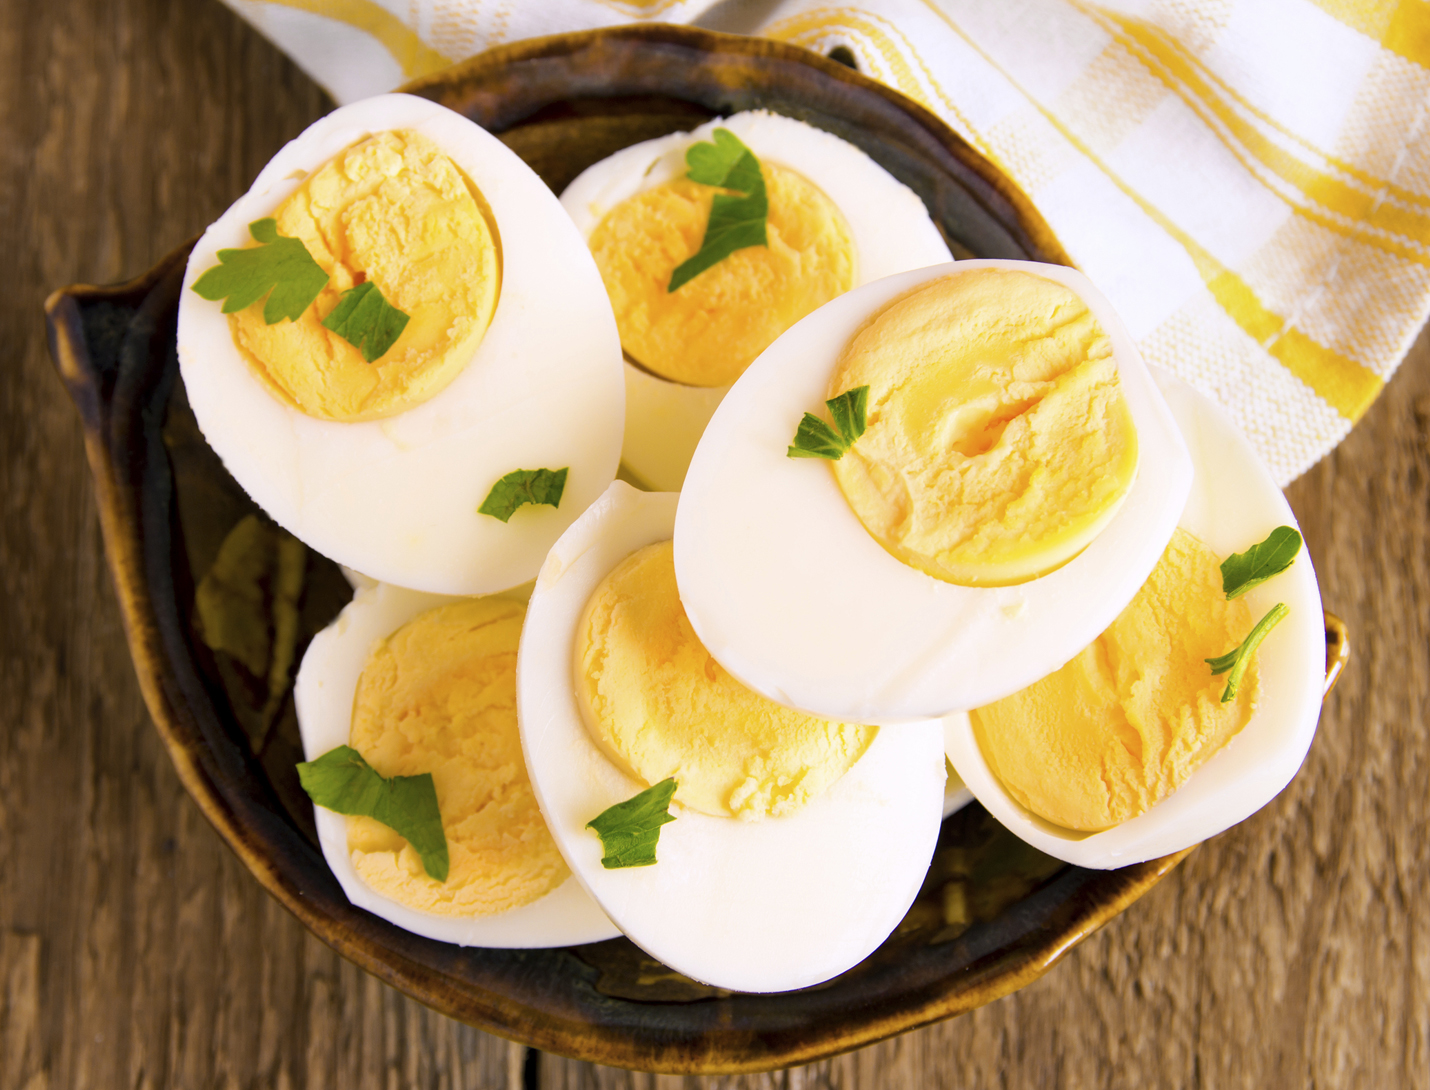 Boiled Eggs for Protein